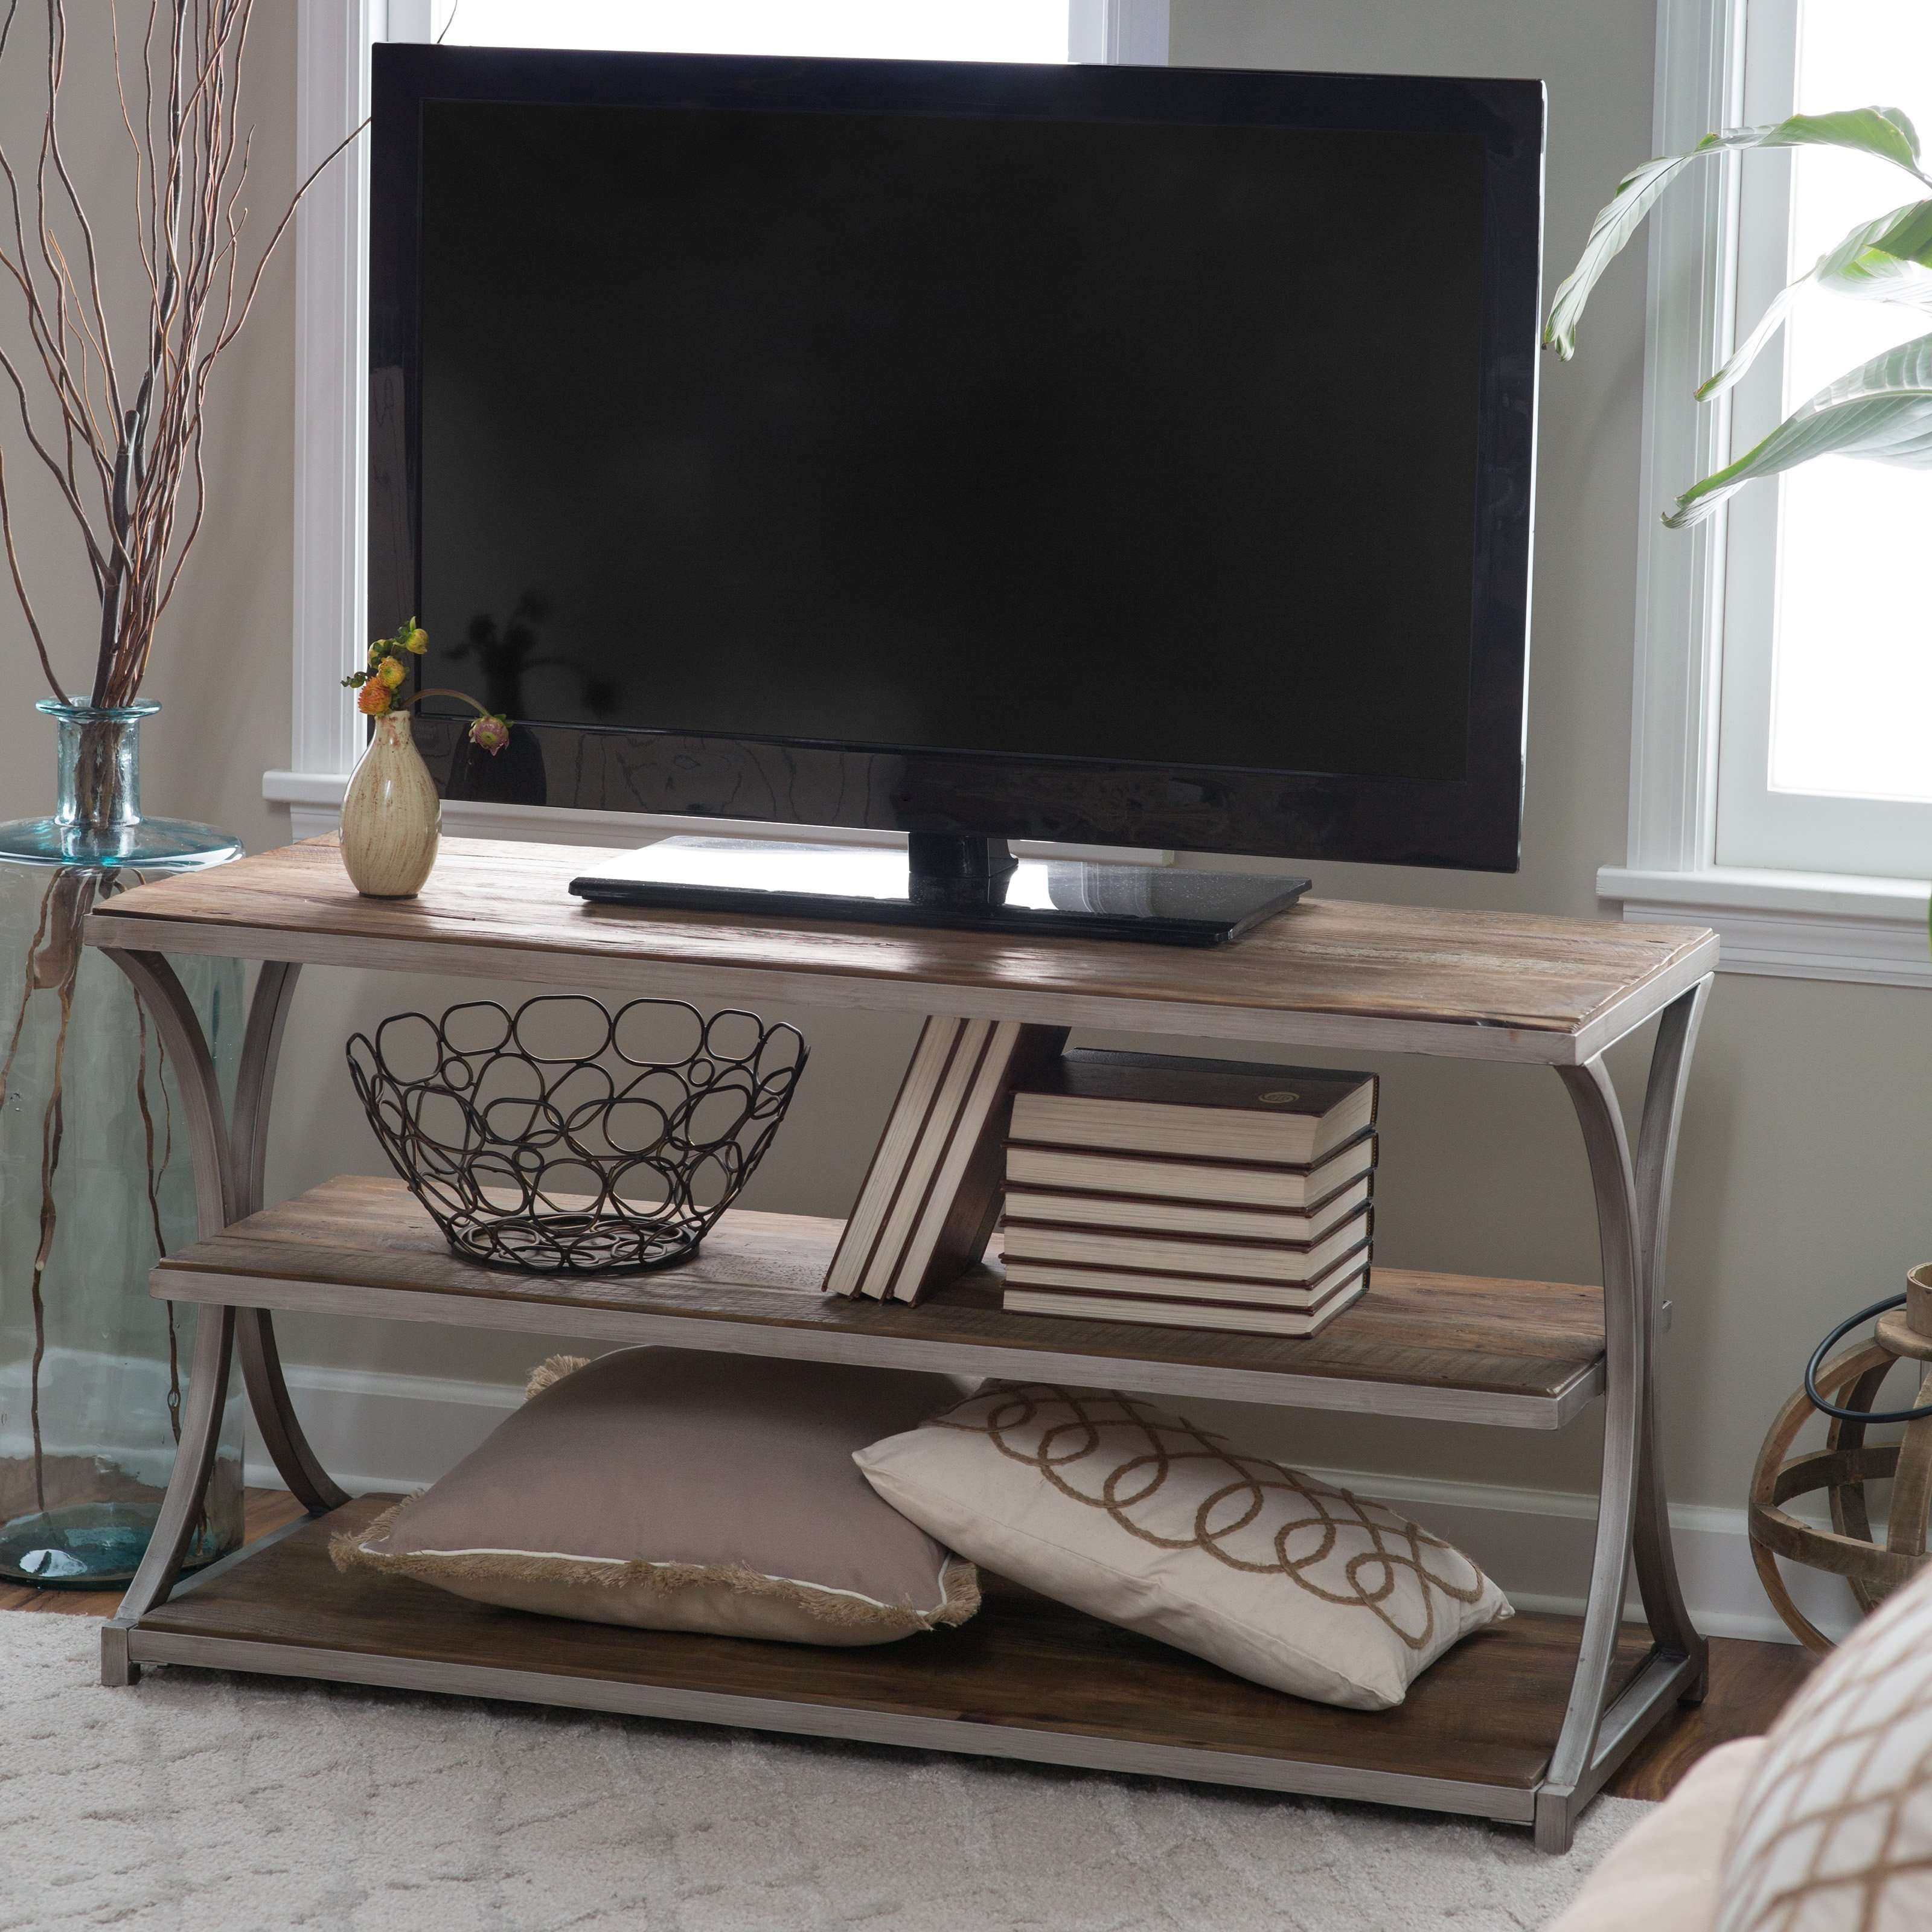 Belham Living Edison Reclaimed Wood Tv Stand | Hayneedle In Wood And Metal Tv Stands (View 1 of 15)